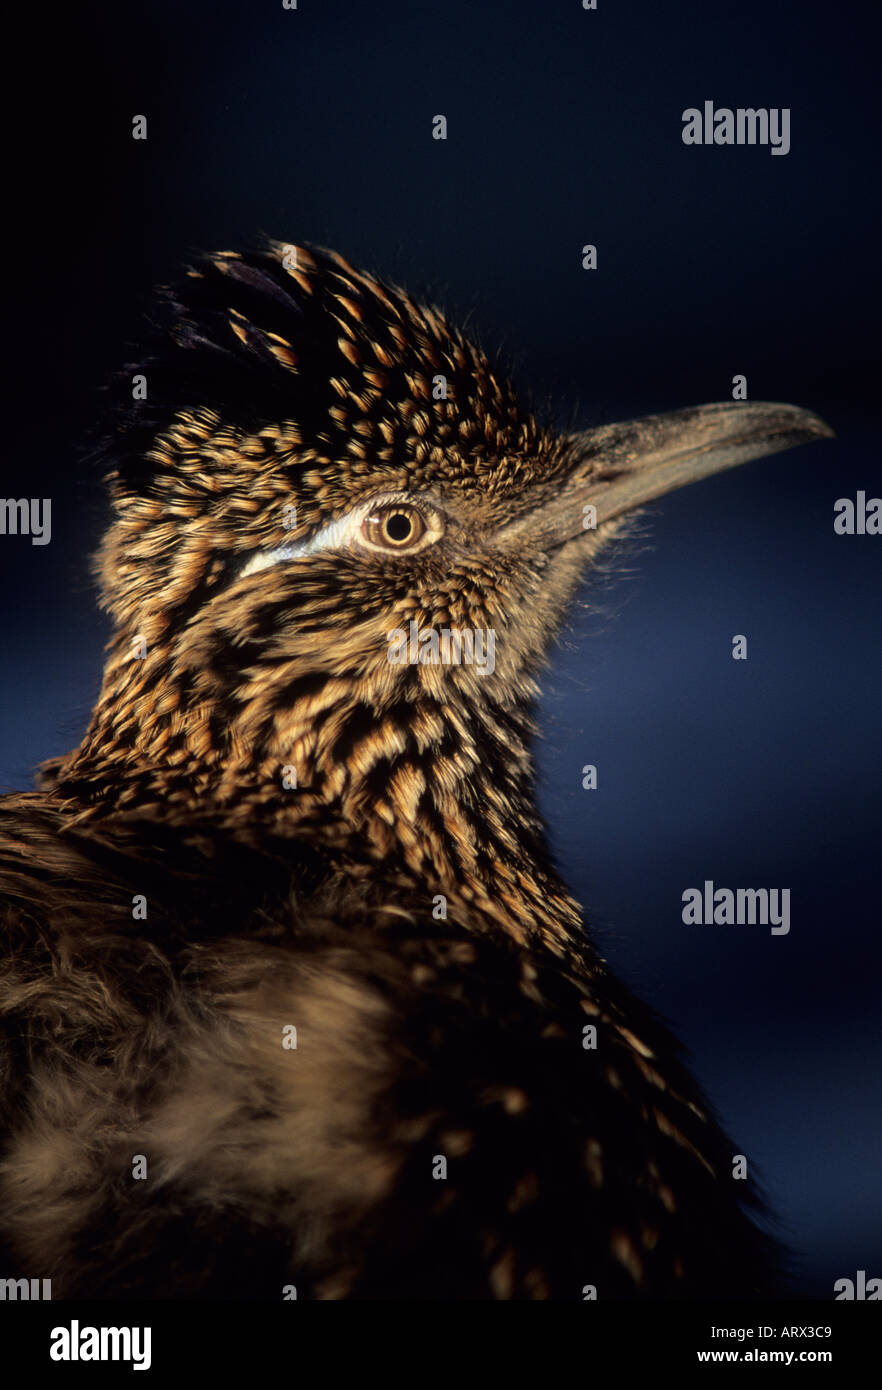 ROADRUNNER (Geococcyx californianus) CAPTIVE Portrait - Stock Image